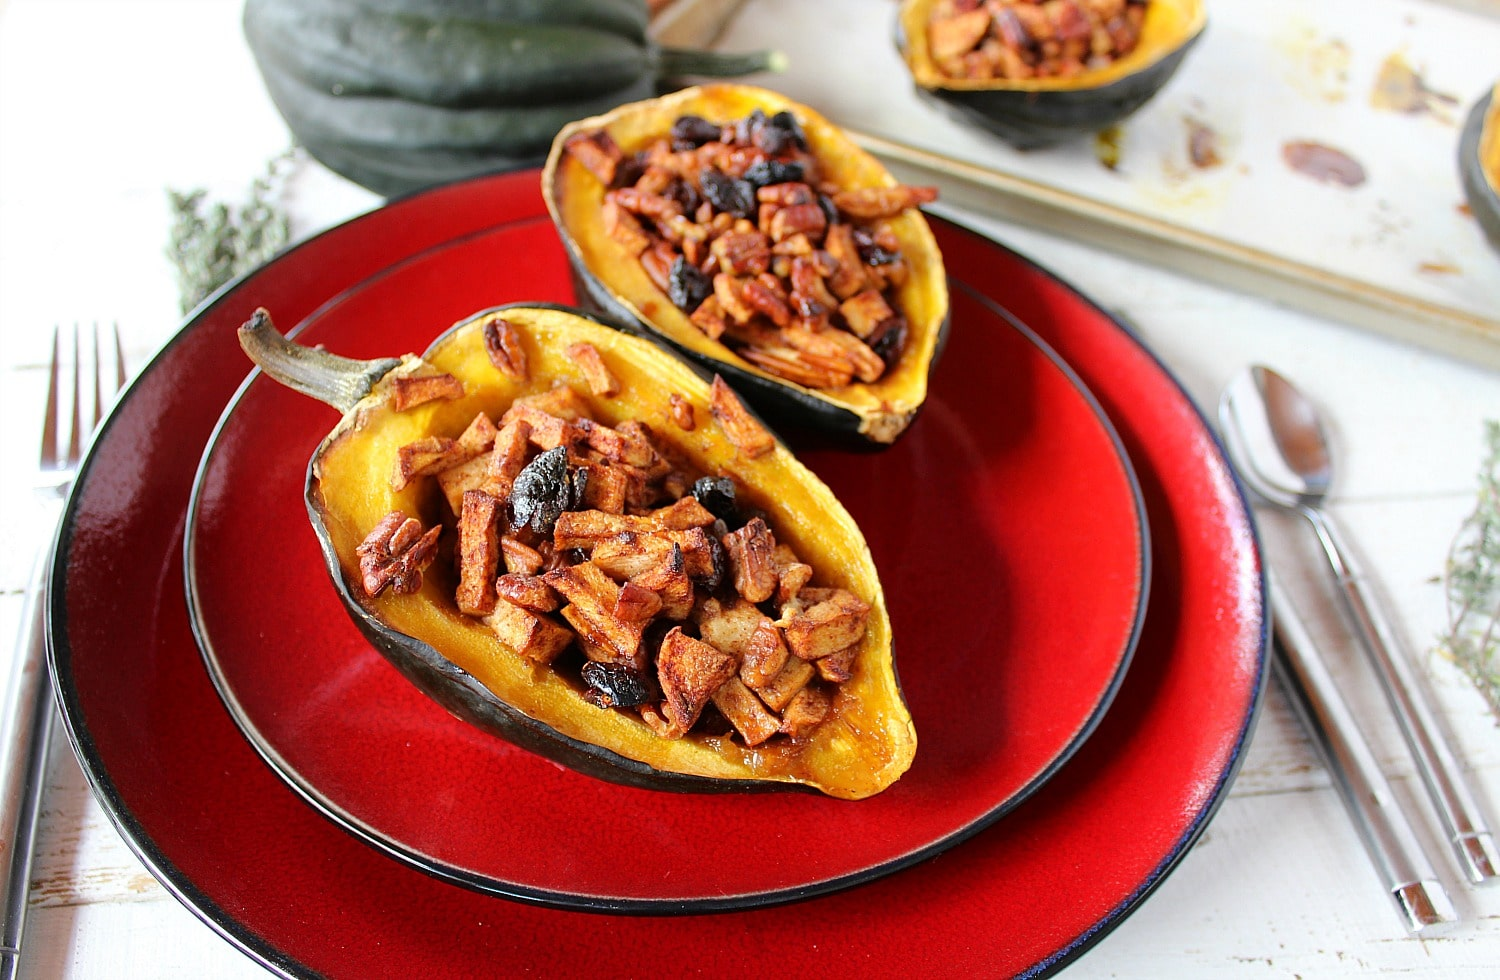 Serve baked stuffed acorn squash on plate.